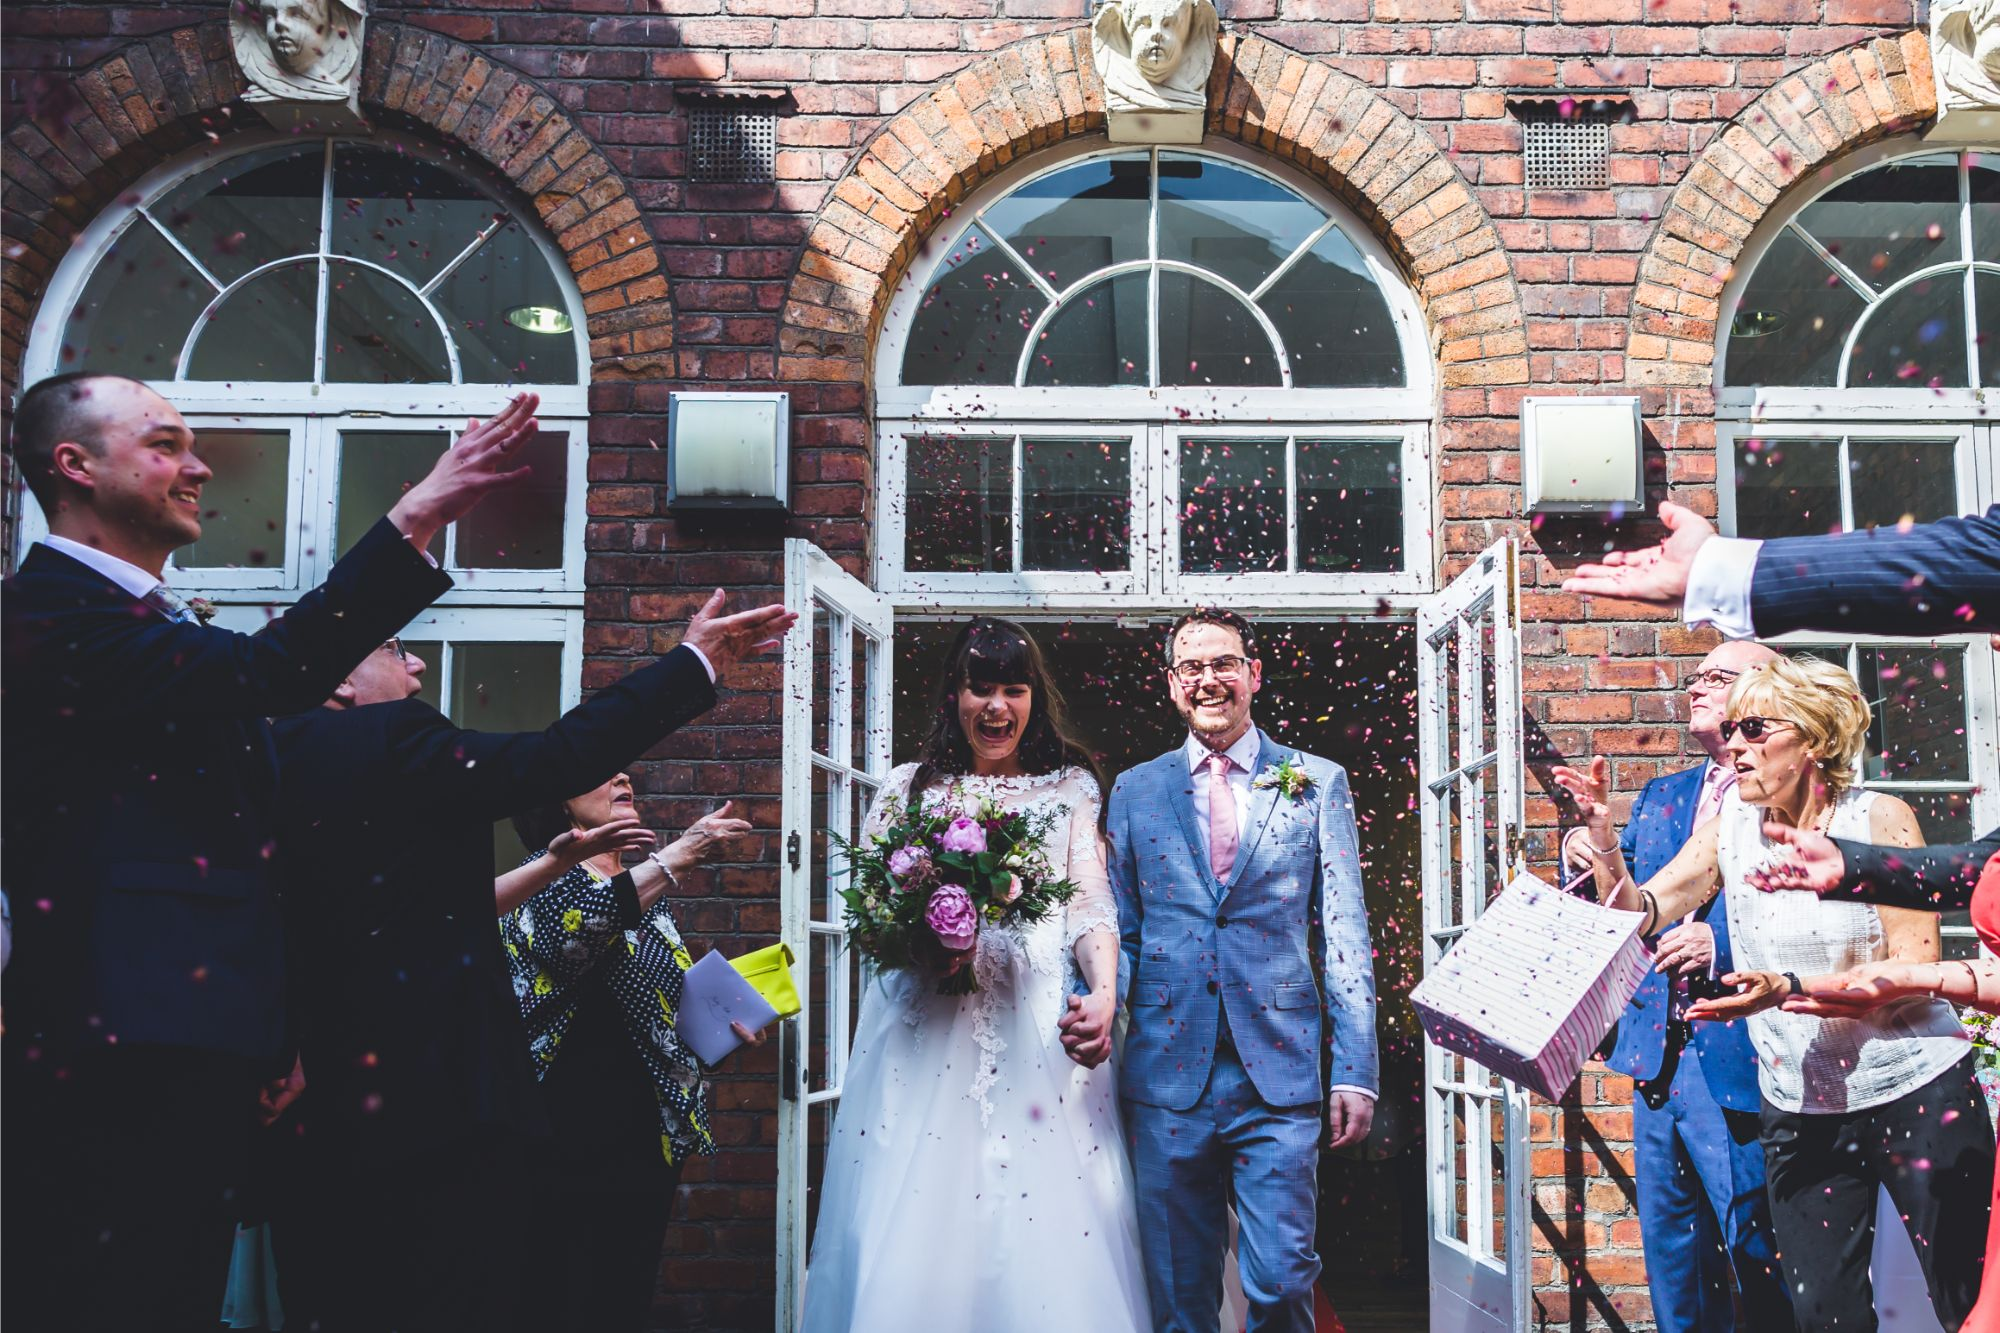 Bride and Groom showered with confetti after wedding ceremony in the Sandon Room at Bluecoat Liverpool